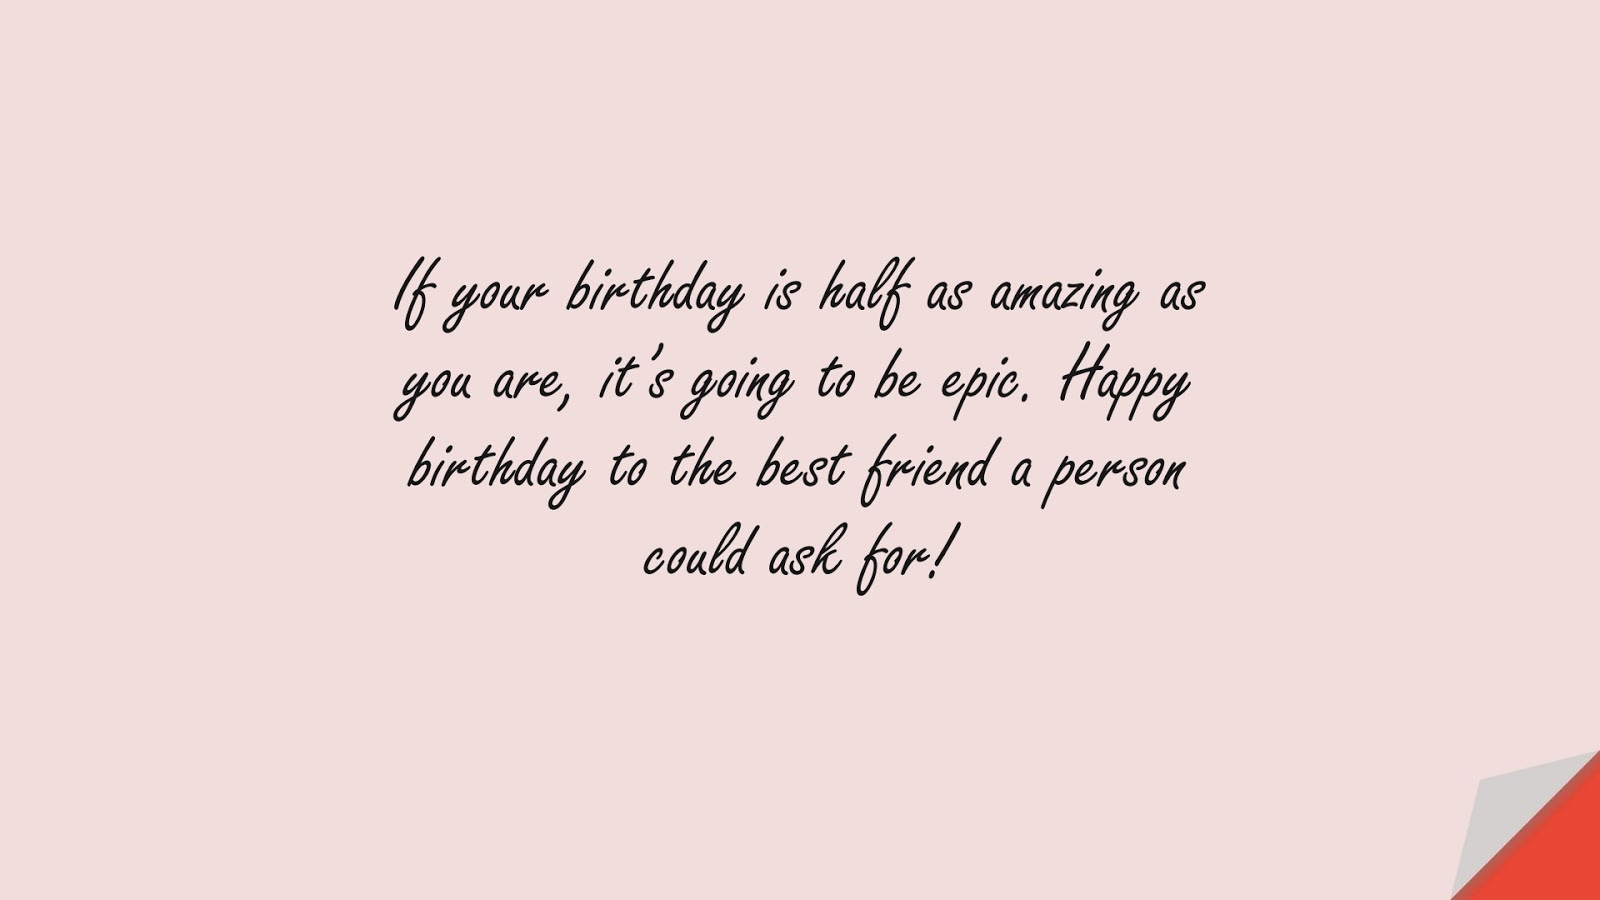 If your birthday is half as amazing as you are, it's going to be epic. Happy birthday to the best friend a person could ask for!FALSE